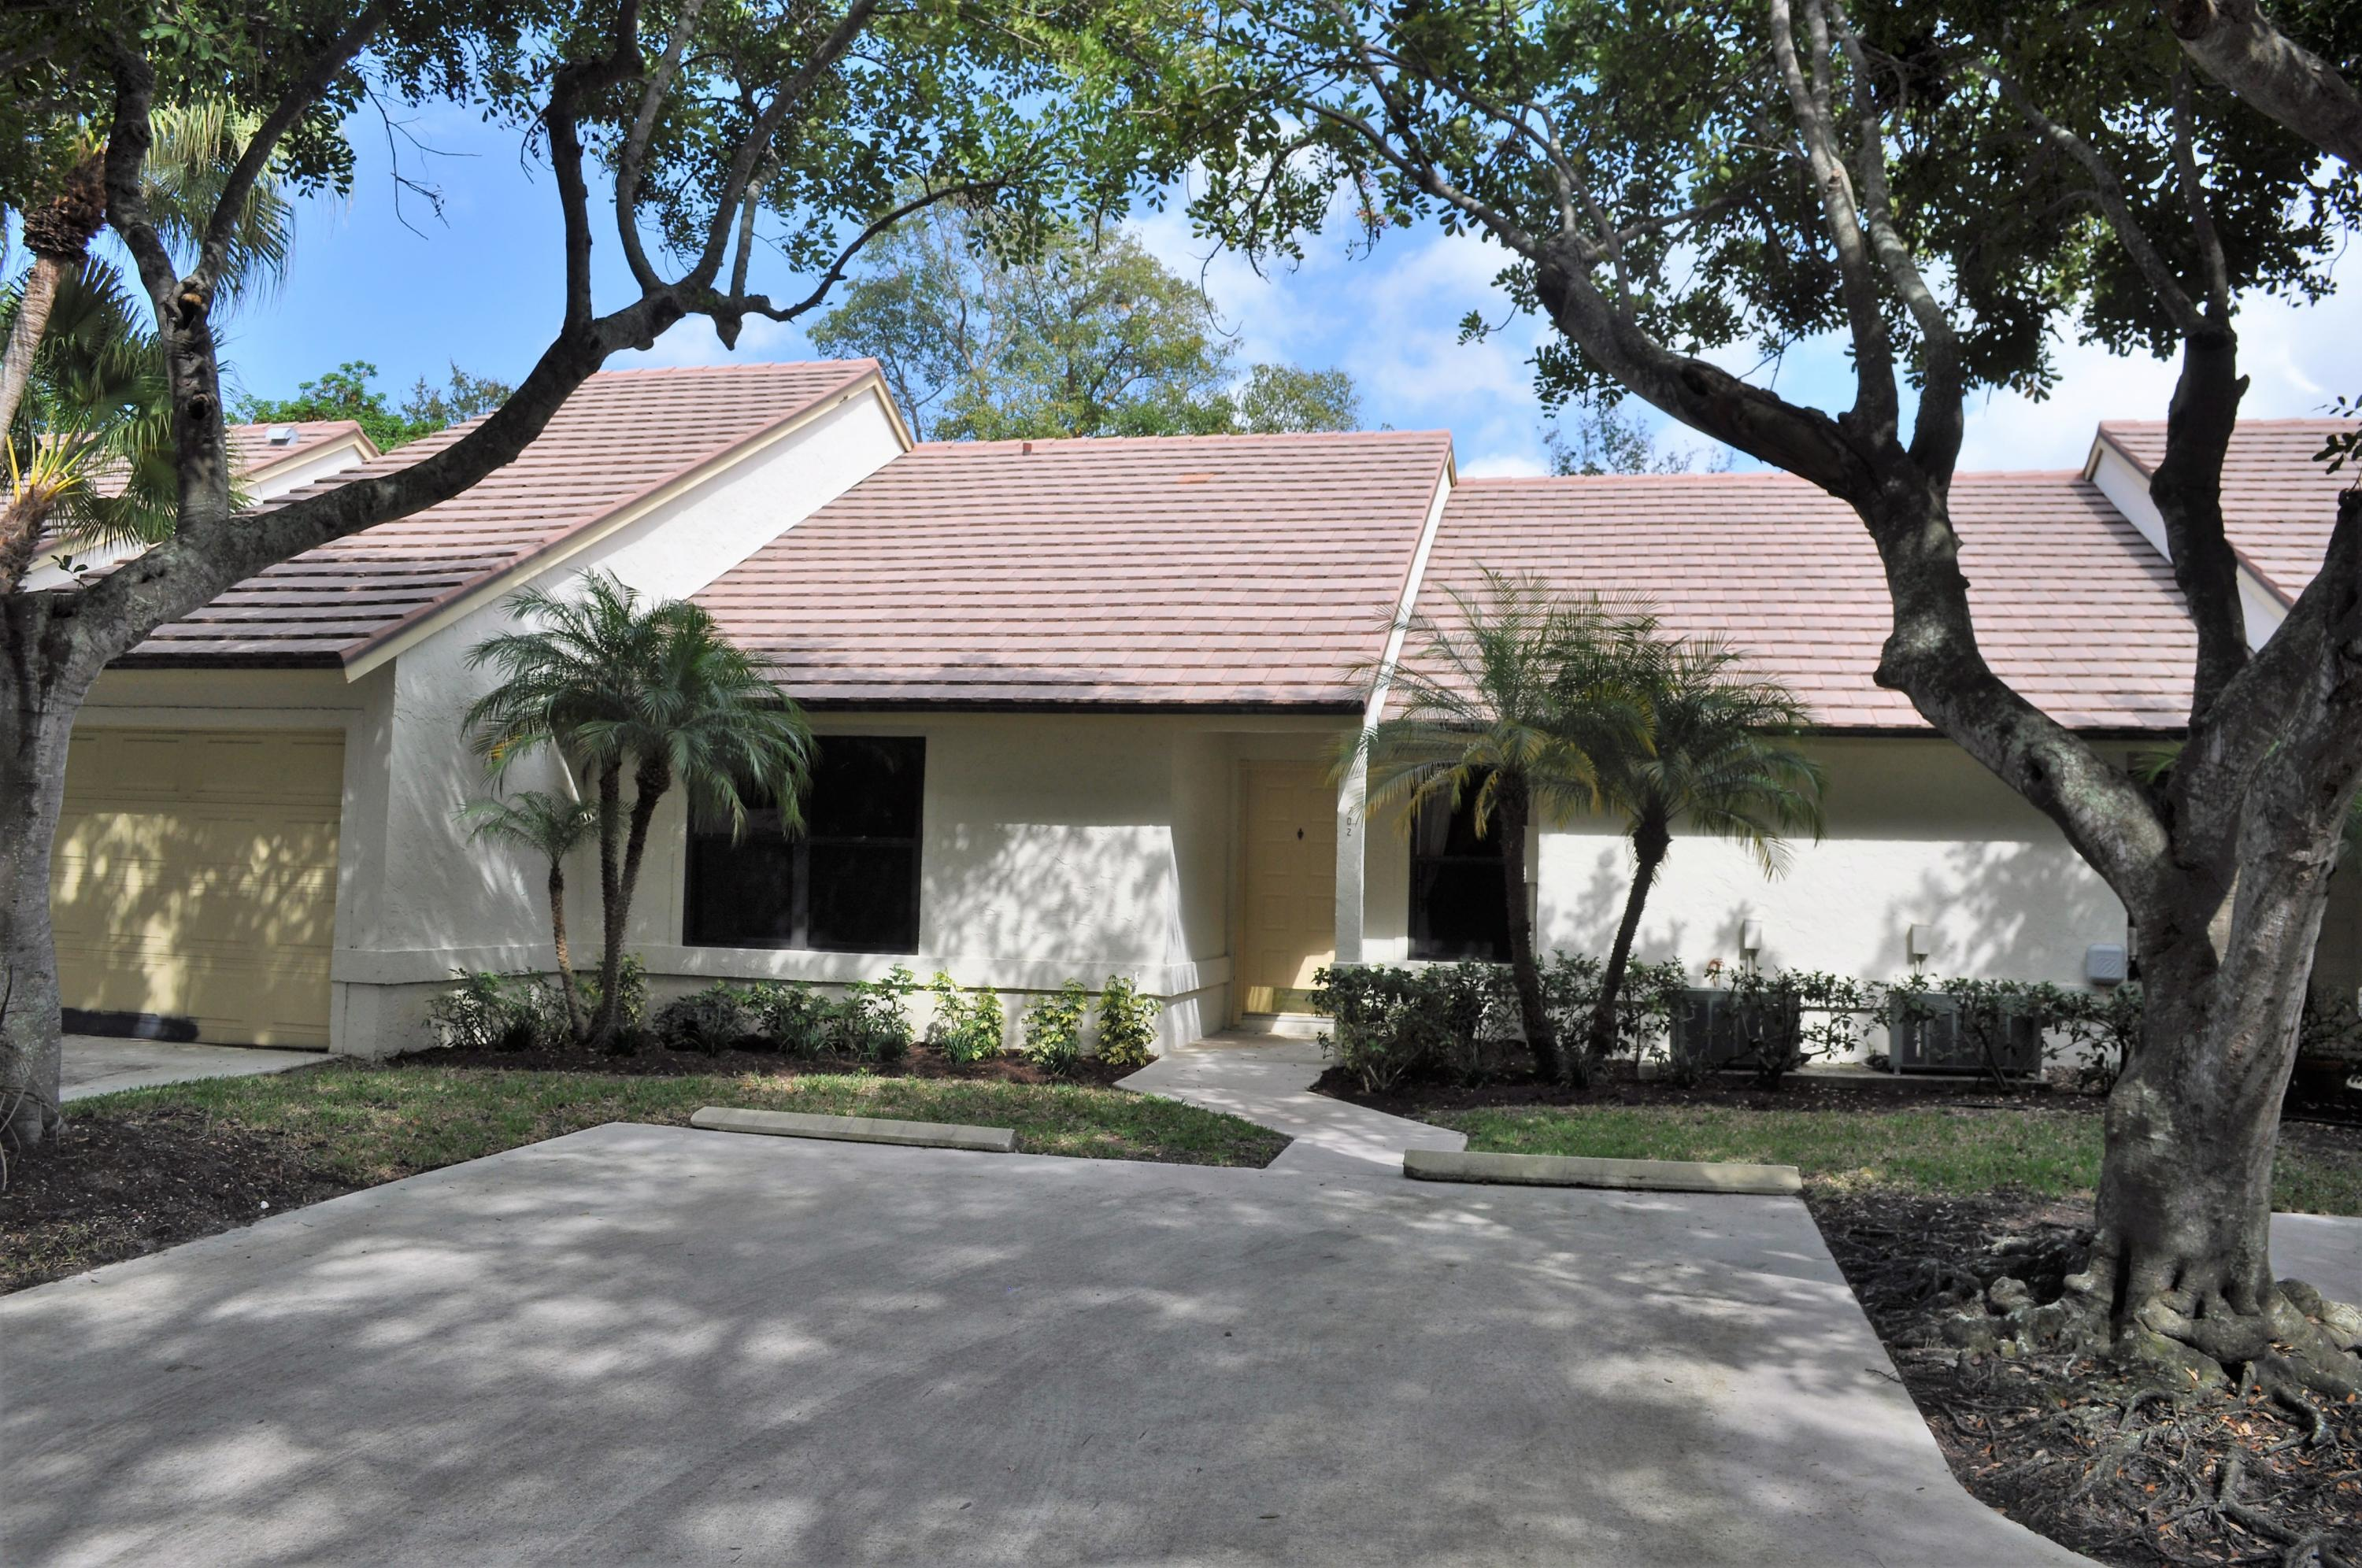 702 Bannock Lane, Palm Beach Gardens, Florida 33418, 2 Bedrooms Bedrooms, ,2 BathroomsBathrooms,A,Villa,Bannock,RX-10498565